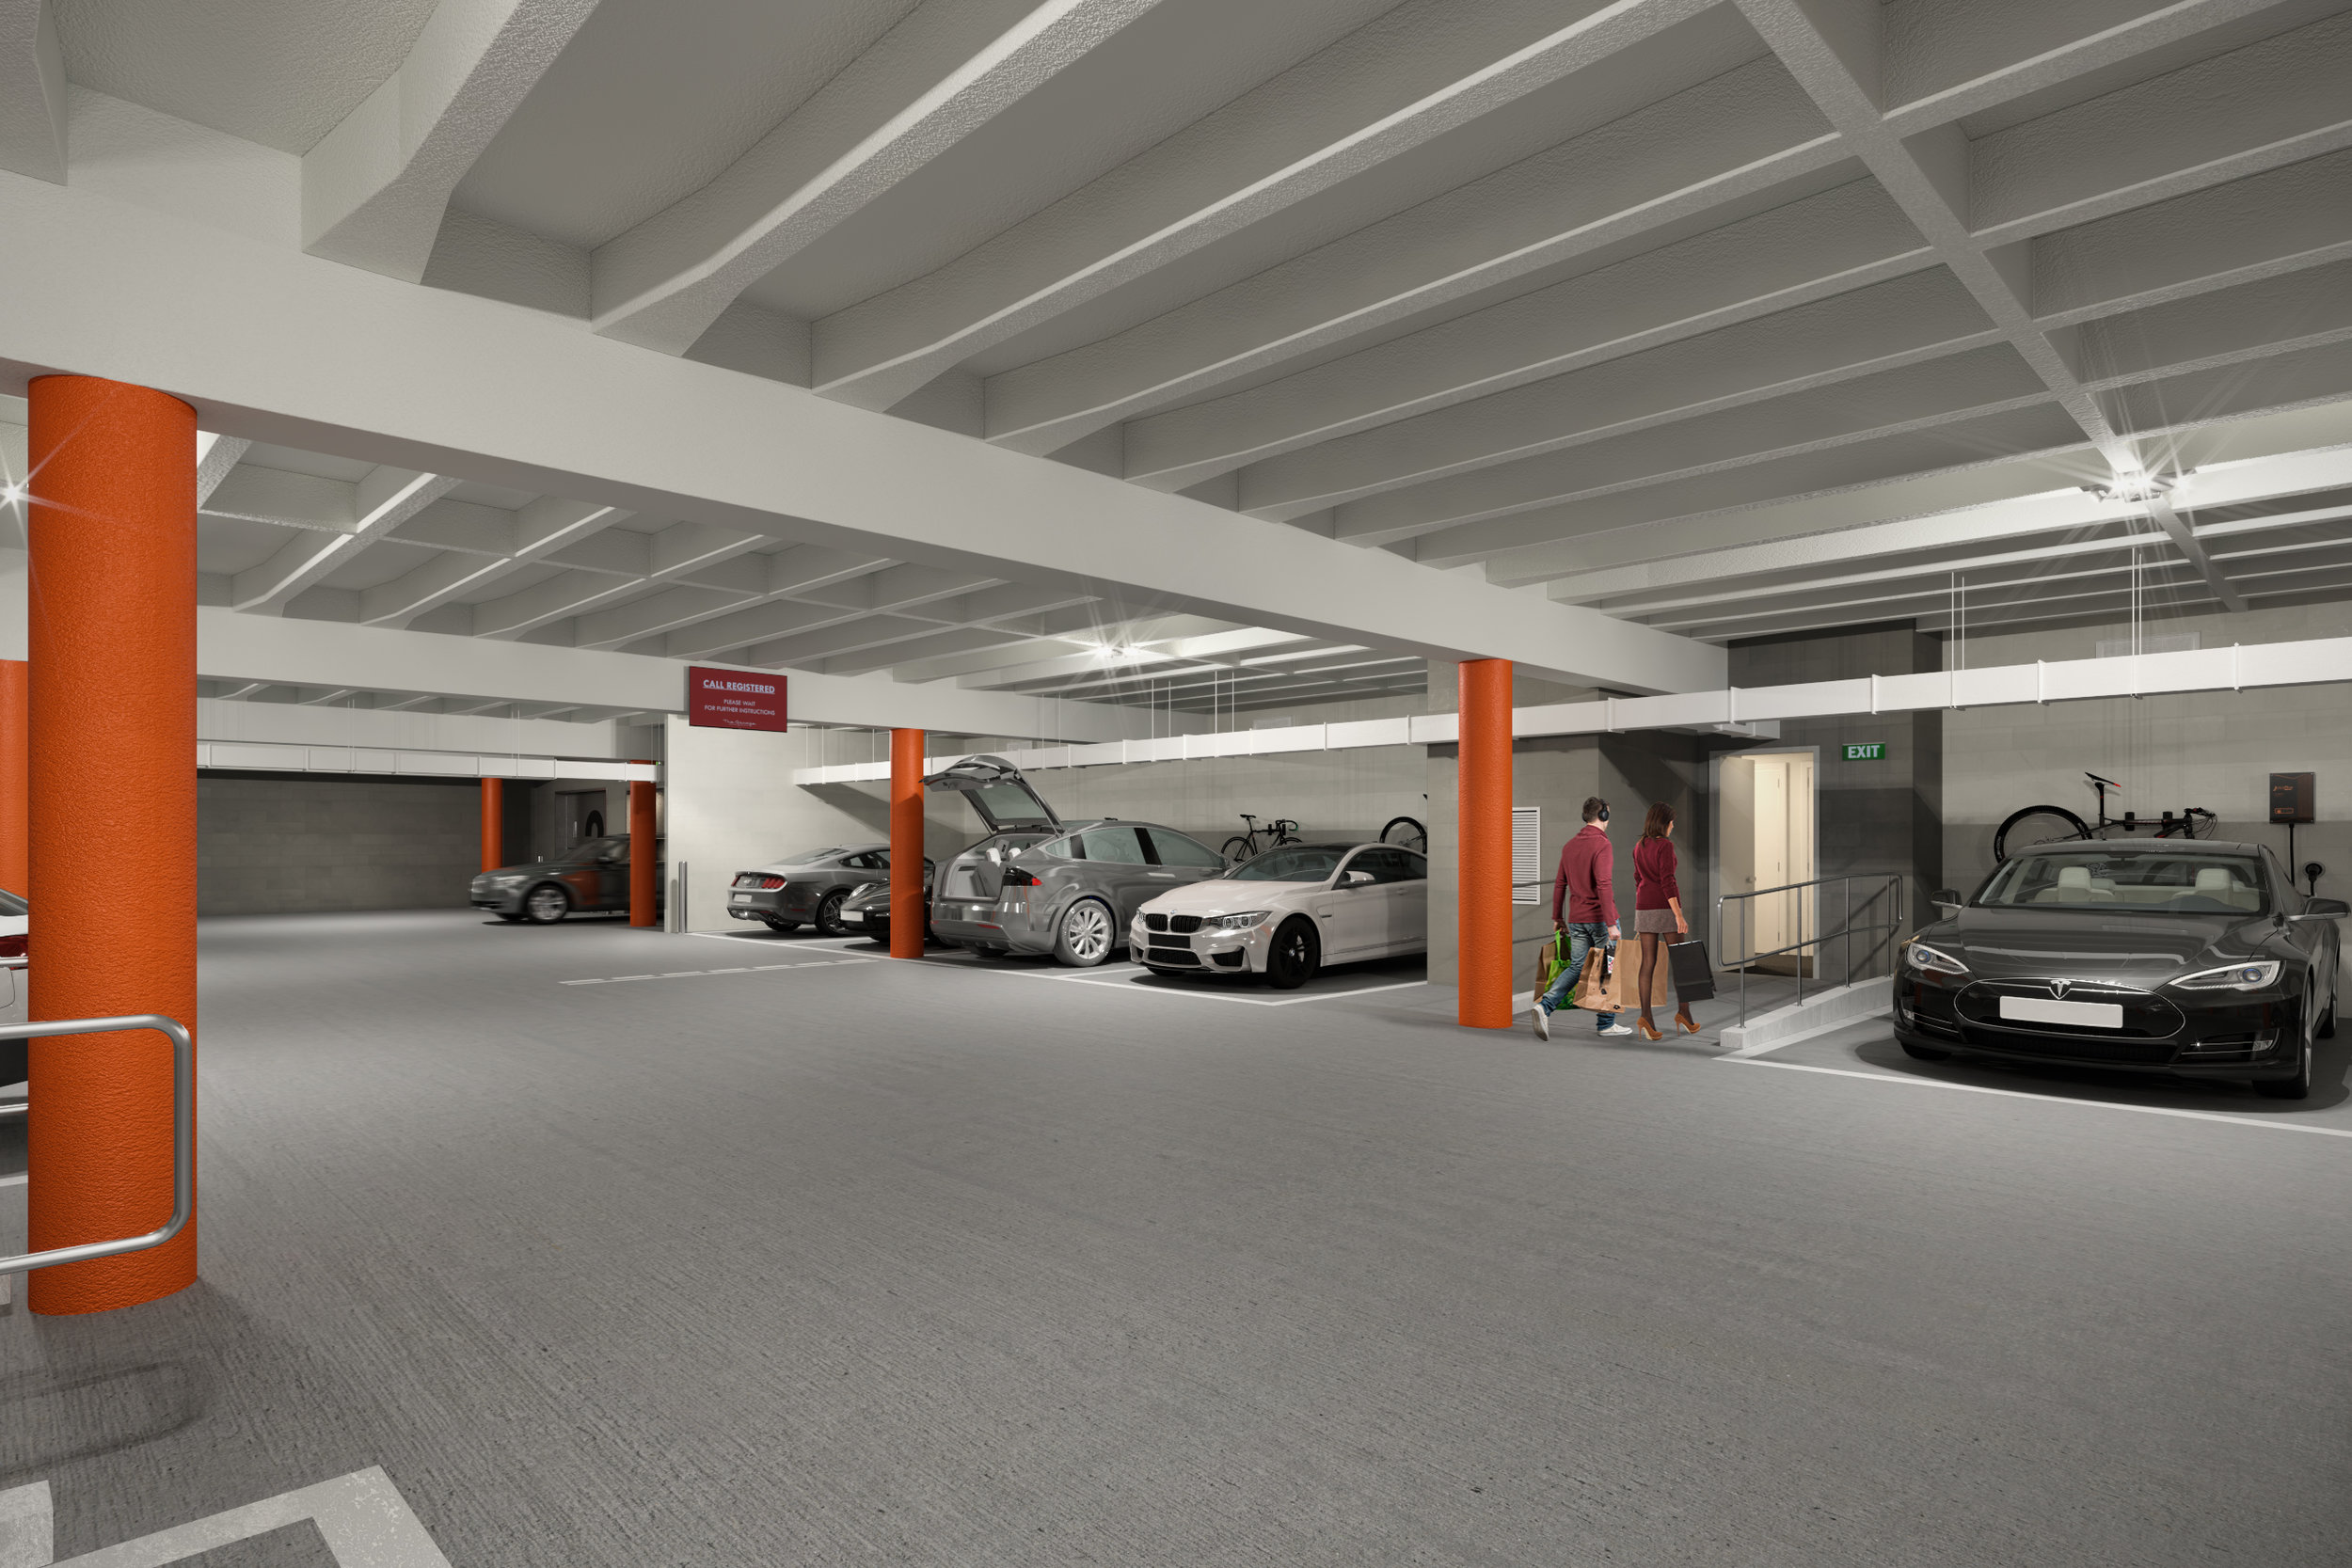 TheGarage_Parking_Interior_Cam2_121318.jpg